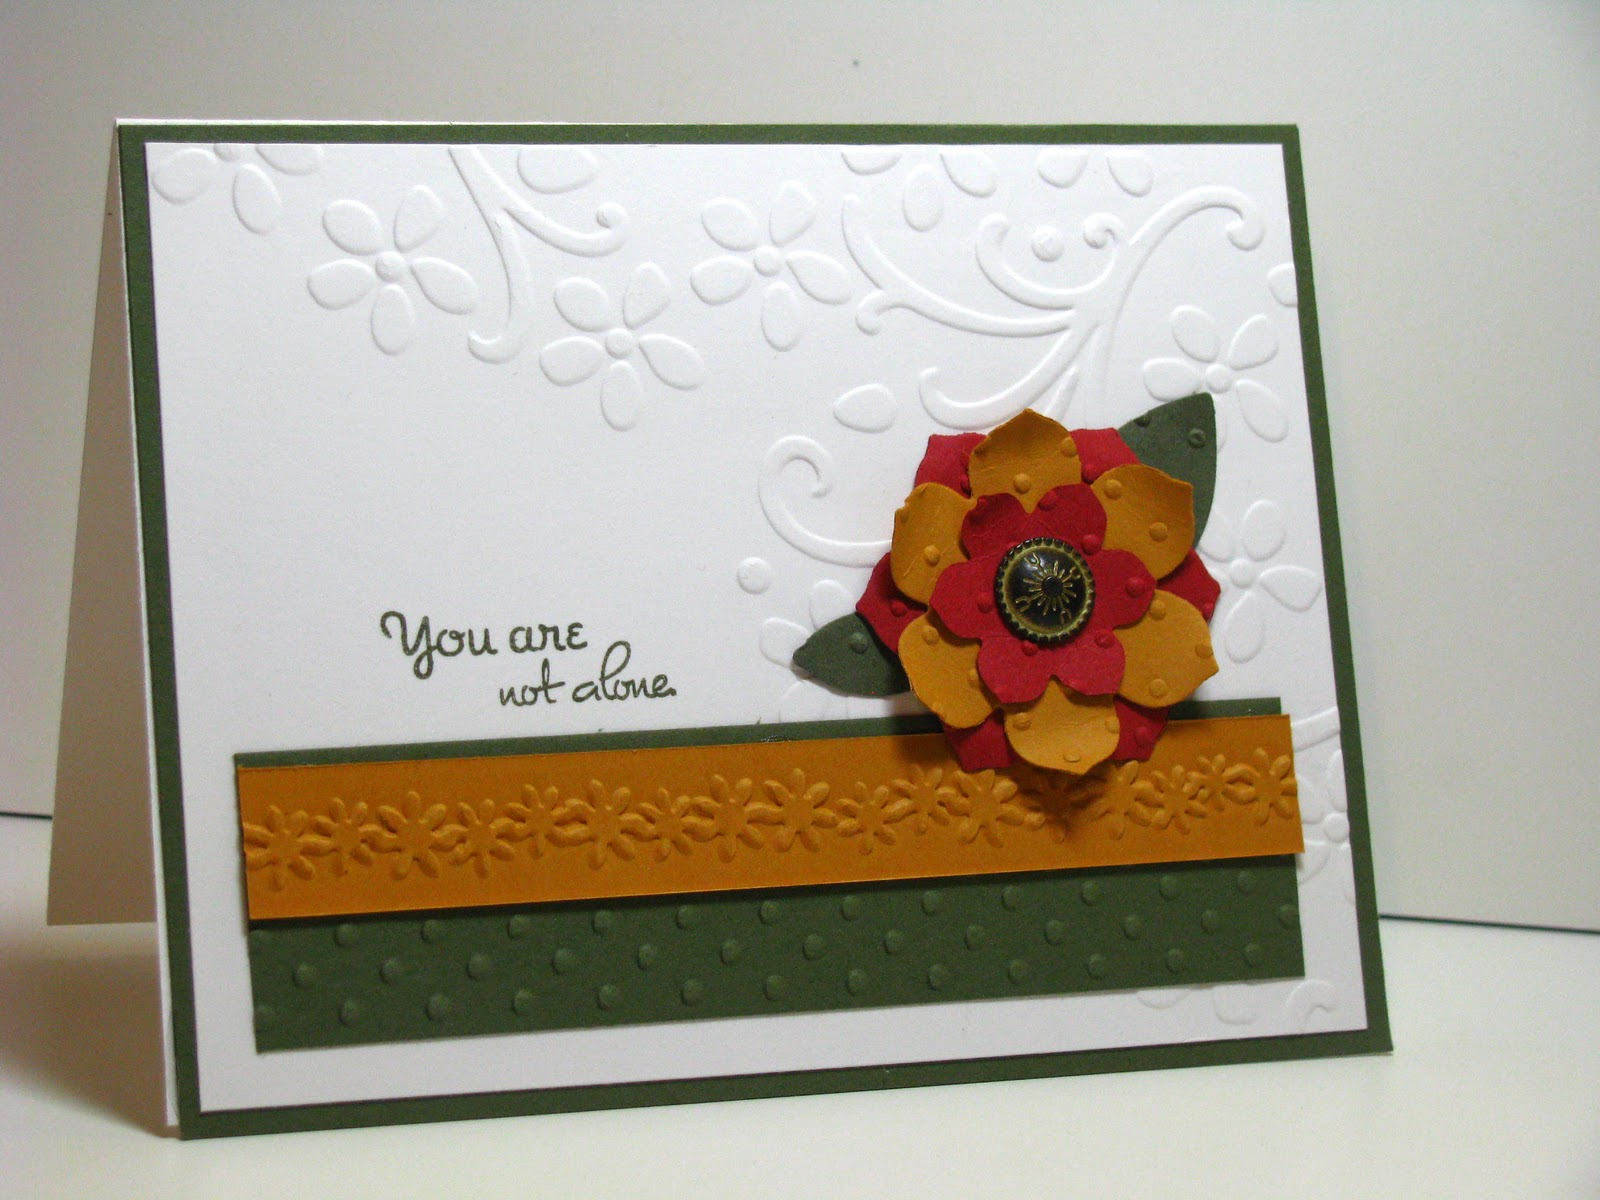 Charming Card Making Ideas With Embossing Folders Part - 13: Emboss On Die Cuts. Folders: Stampinu0027 Up Corner Flowers And Polka Dots,  Cuttlebug Border Folder